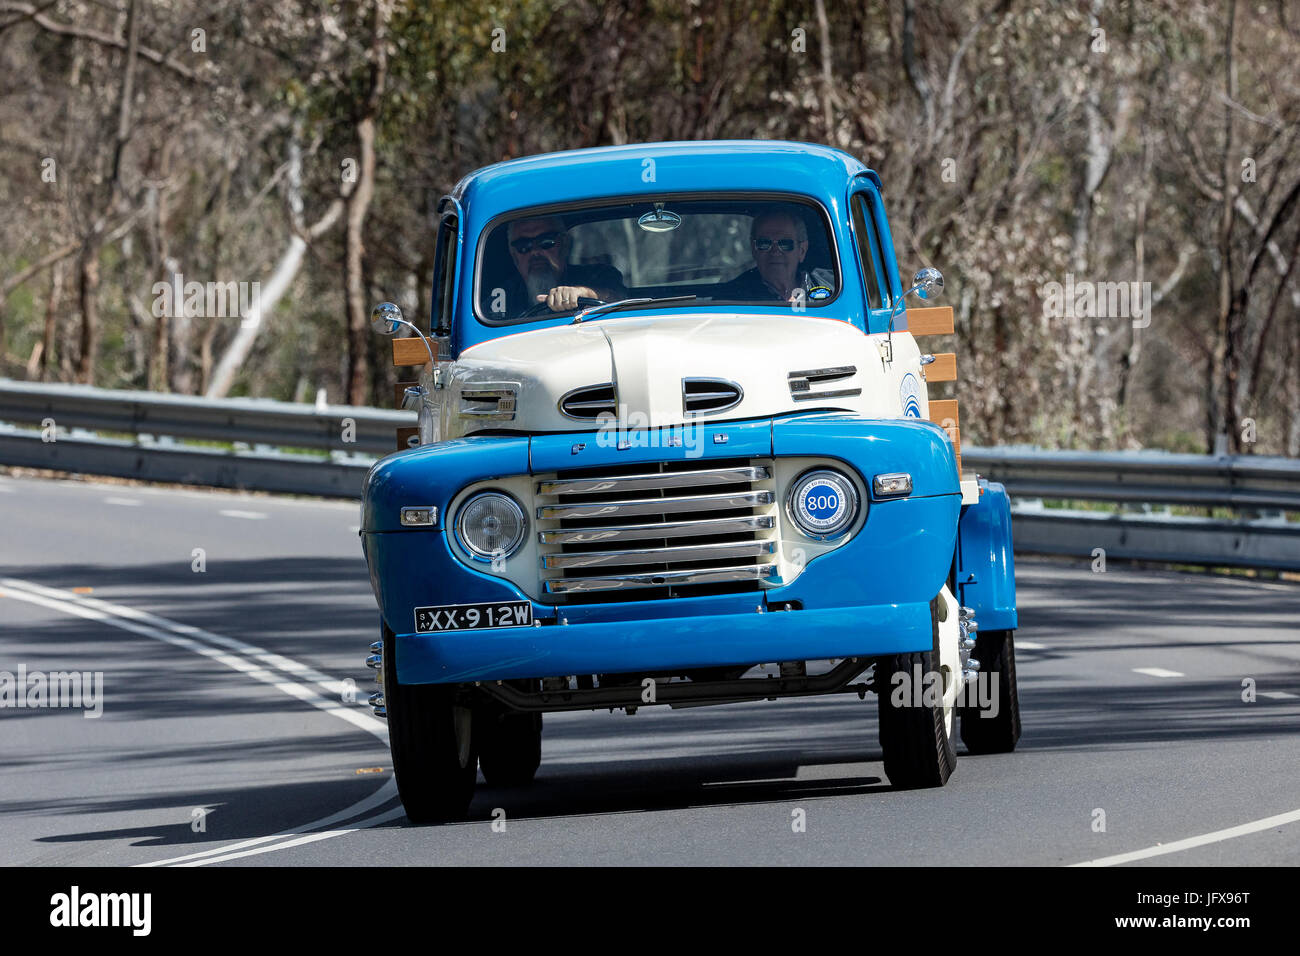 1940s Ford Vintage Classic Car Stock Photos 1948 Panel Truck F5 Driving On Country Roads Near The Town Of Birdwood South